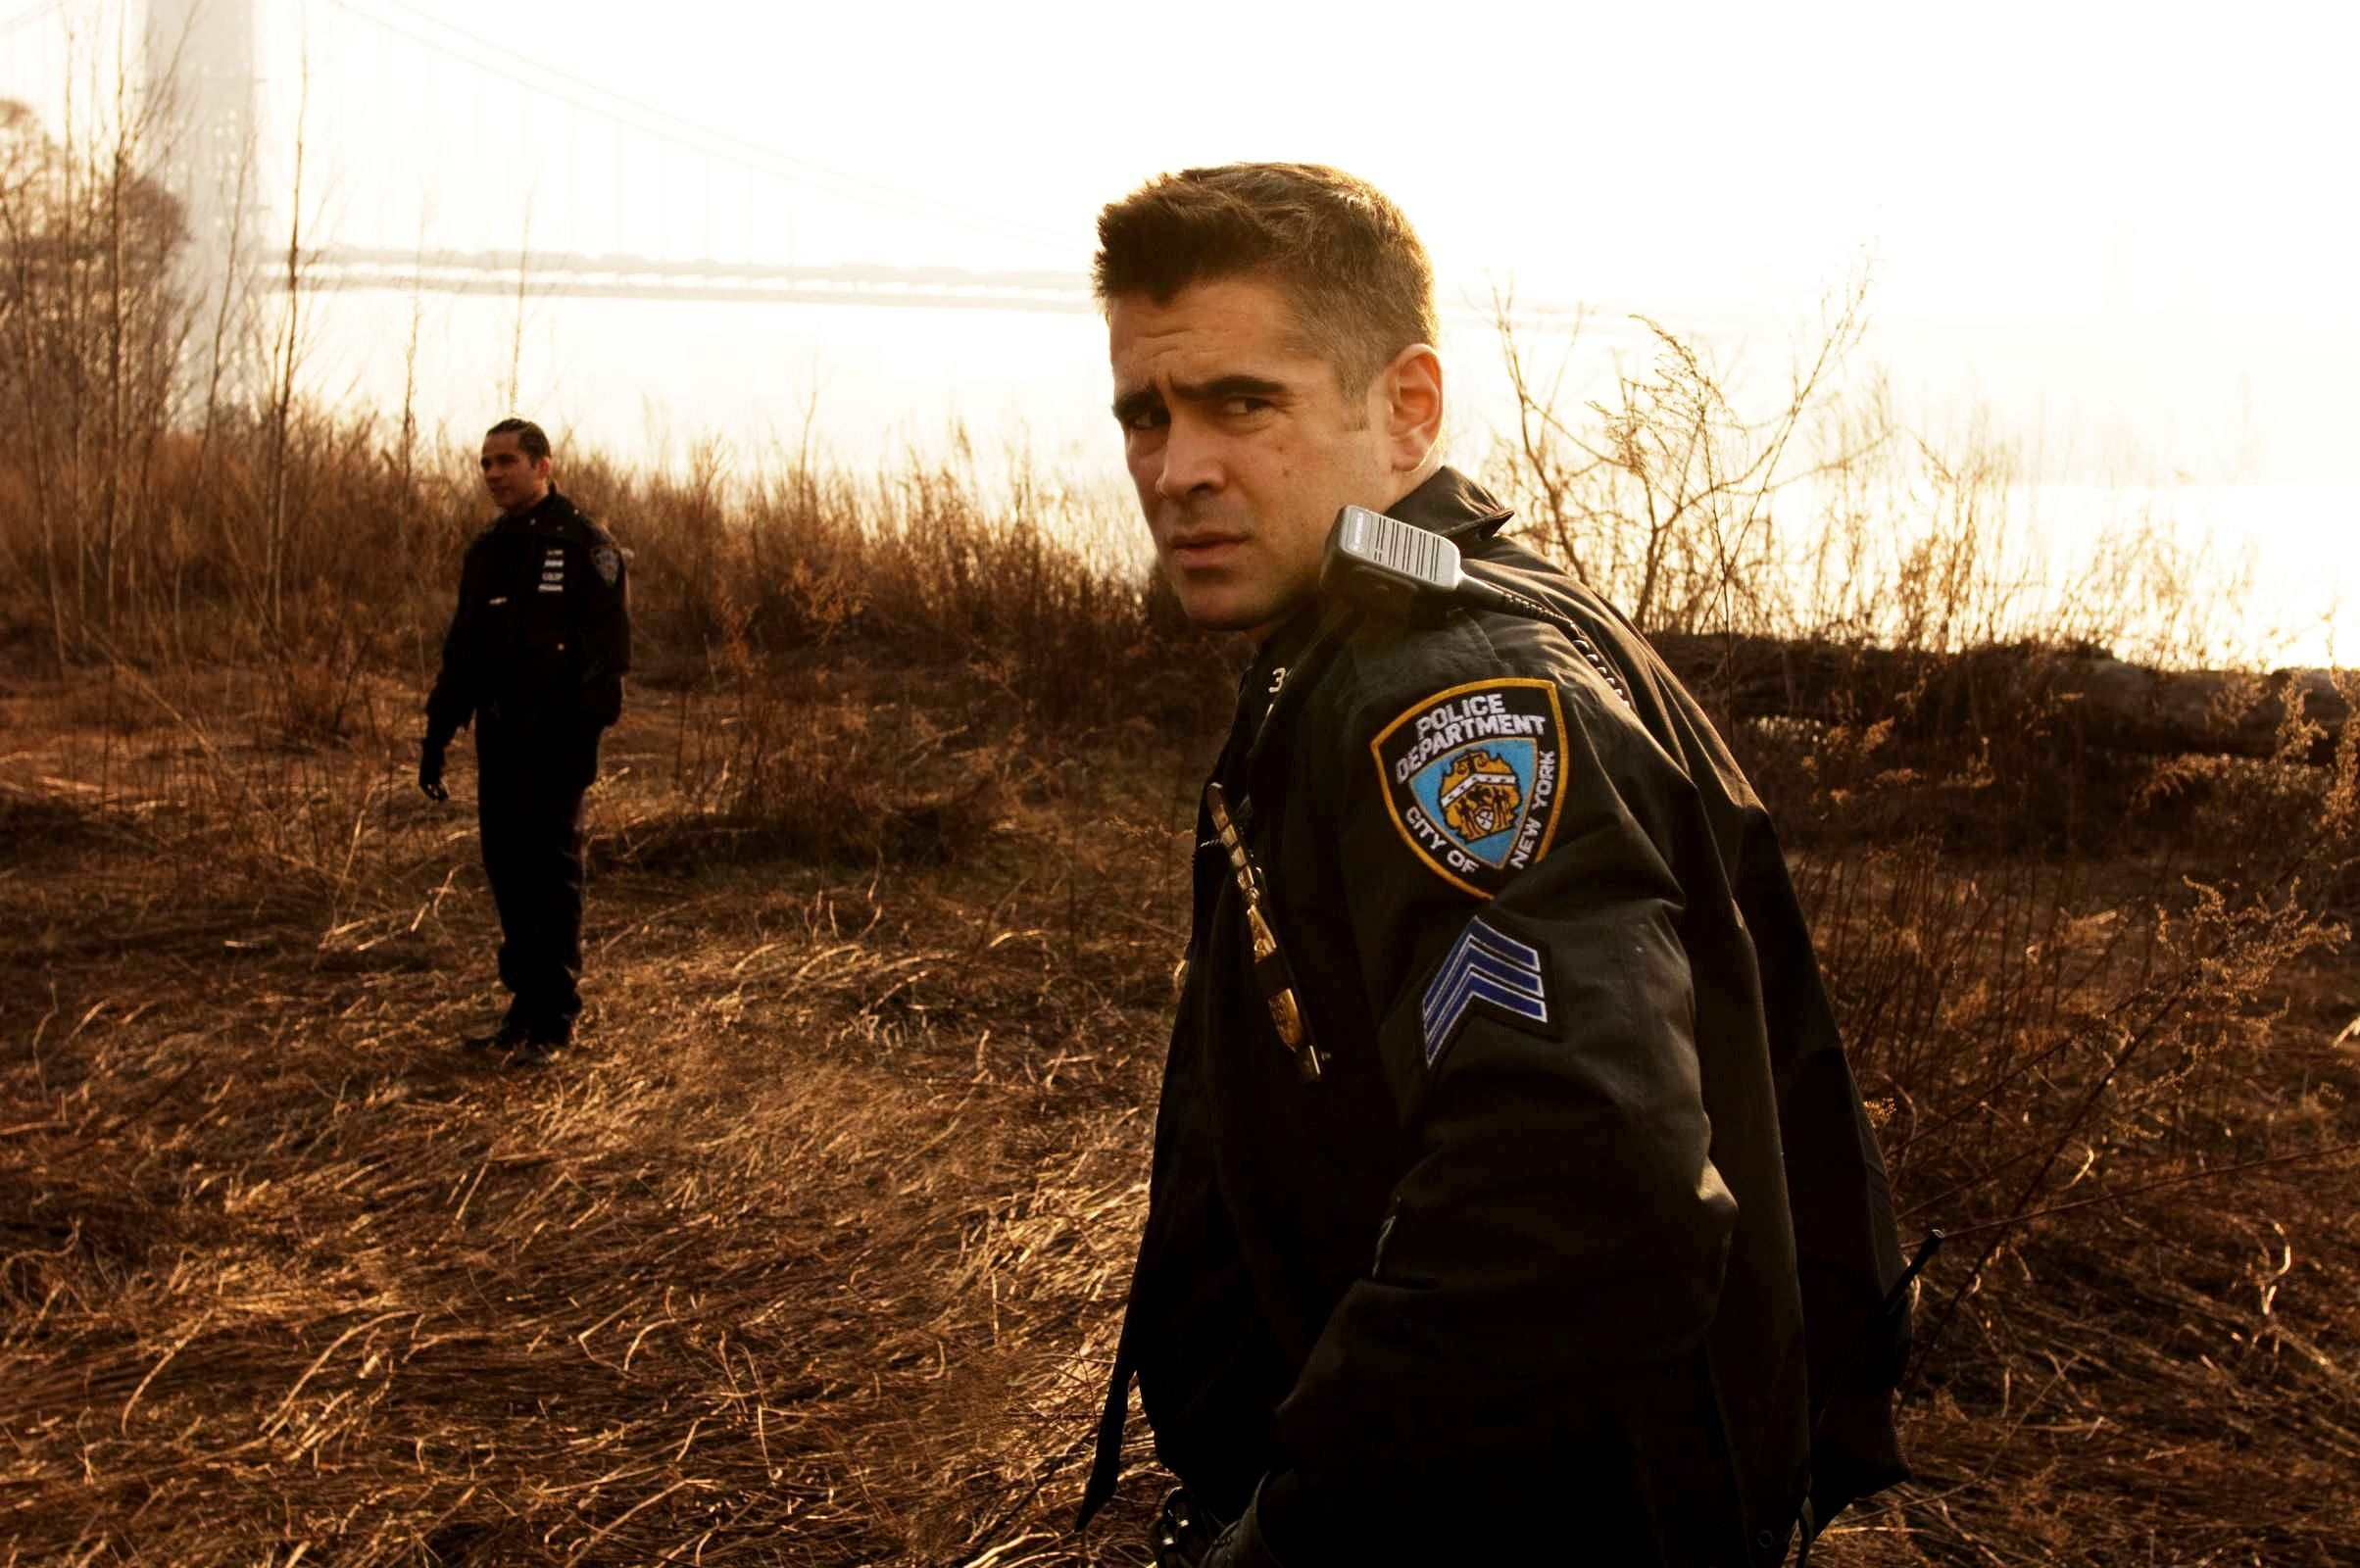 colin farrell on true detective season 2 2015